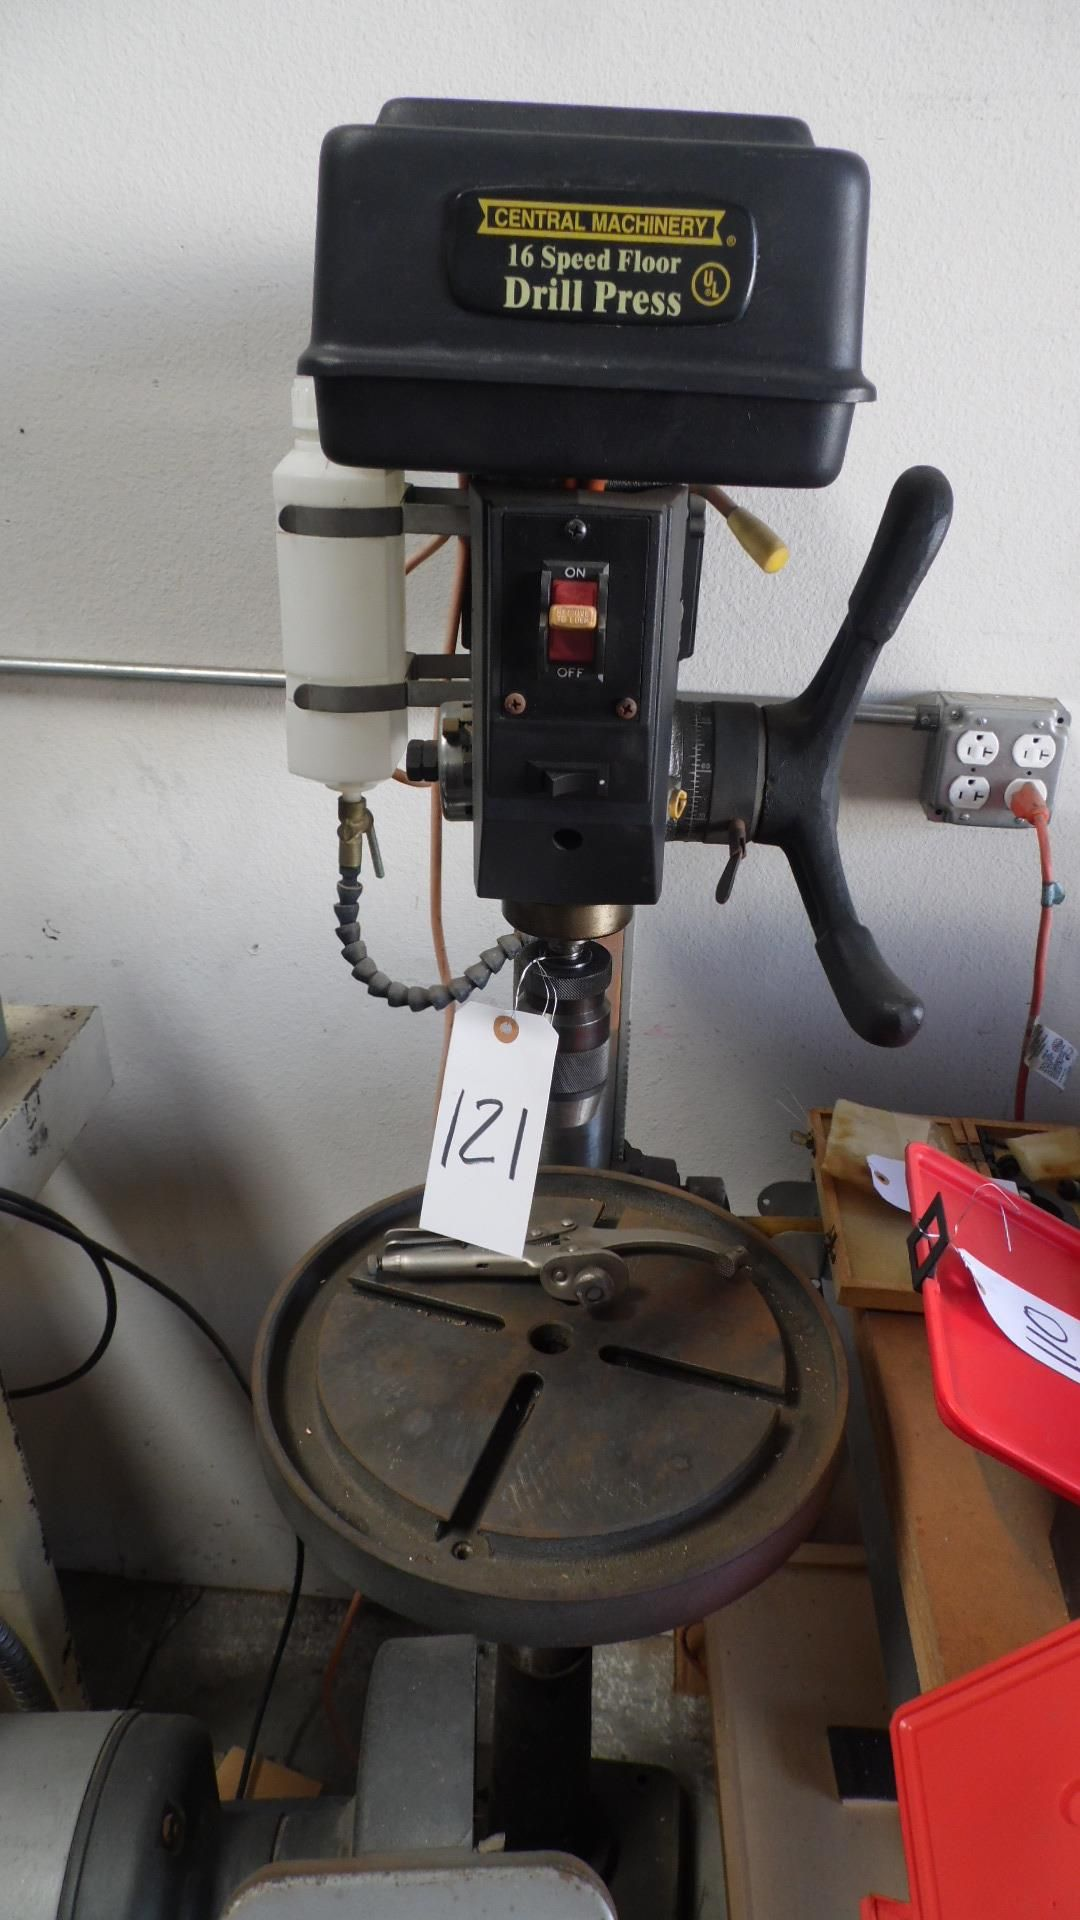 Lot 121 - CENTRAL MACHINERY 16 SPEED DRILL PRESS